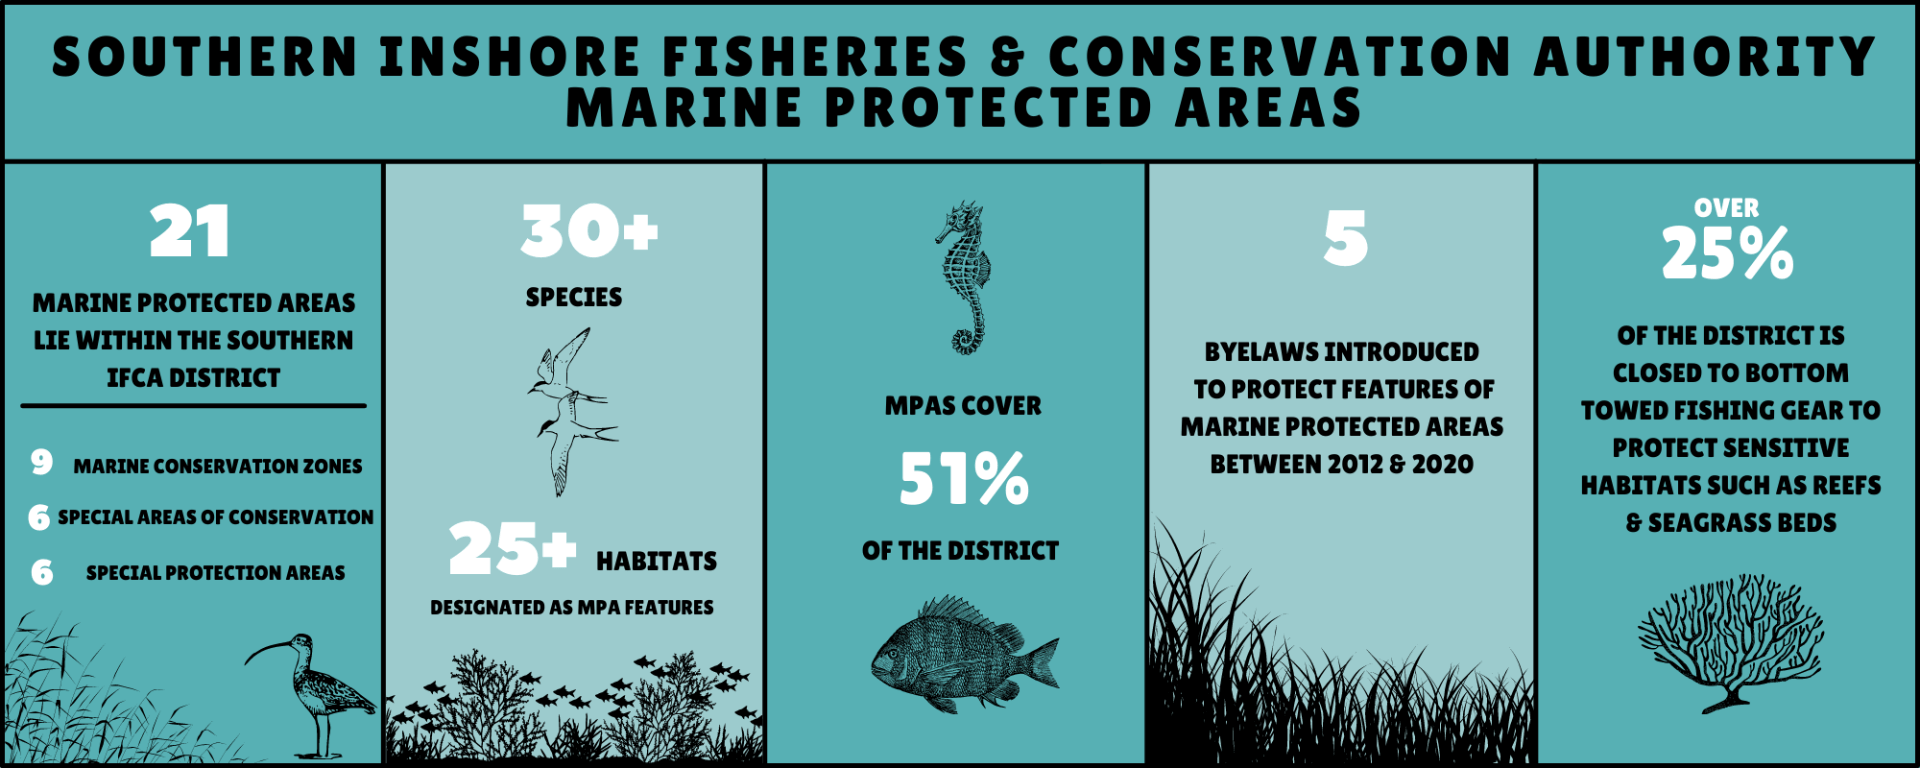 Southern IFCA | SIFCA | Marine Protected Areas | MPA Summary Infographic